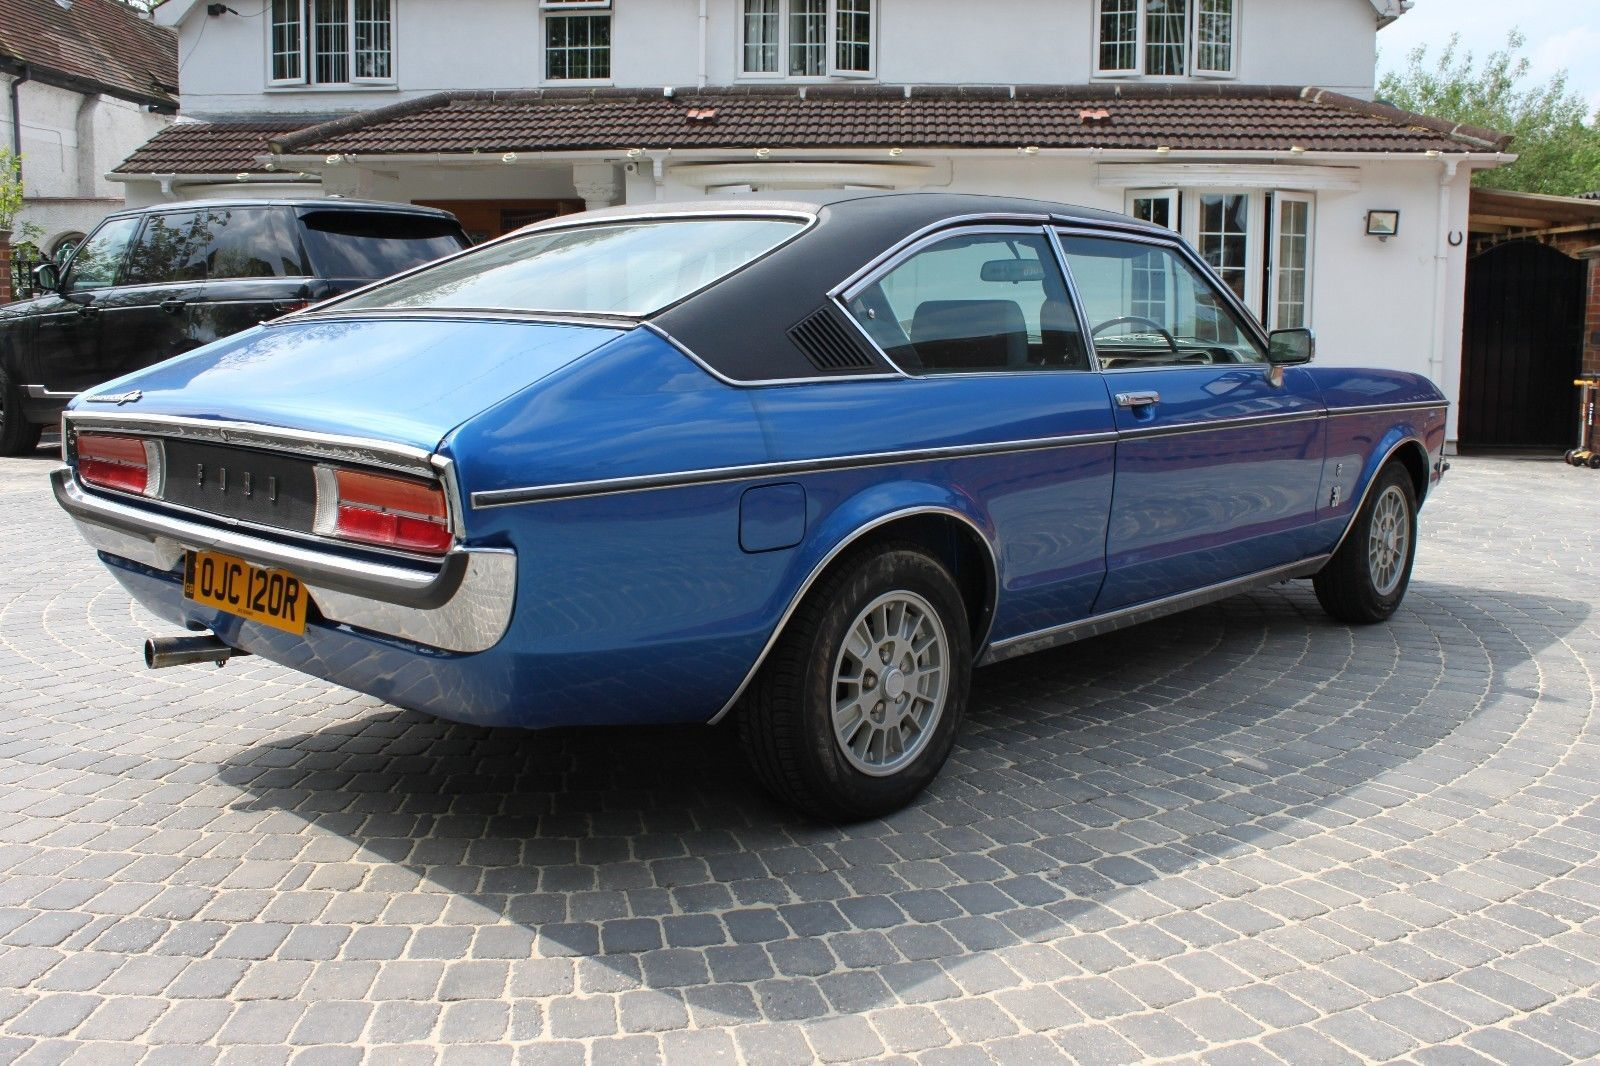 Ford Granada 3 0 V6 Automatic Coupe 1977 Mark 1